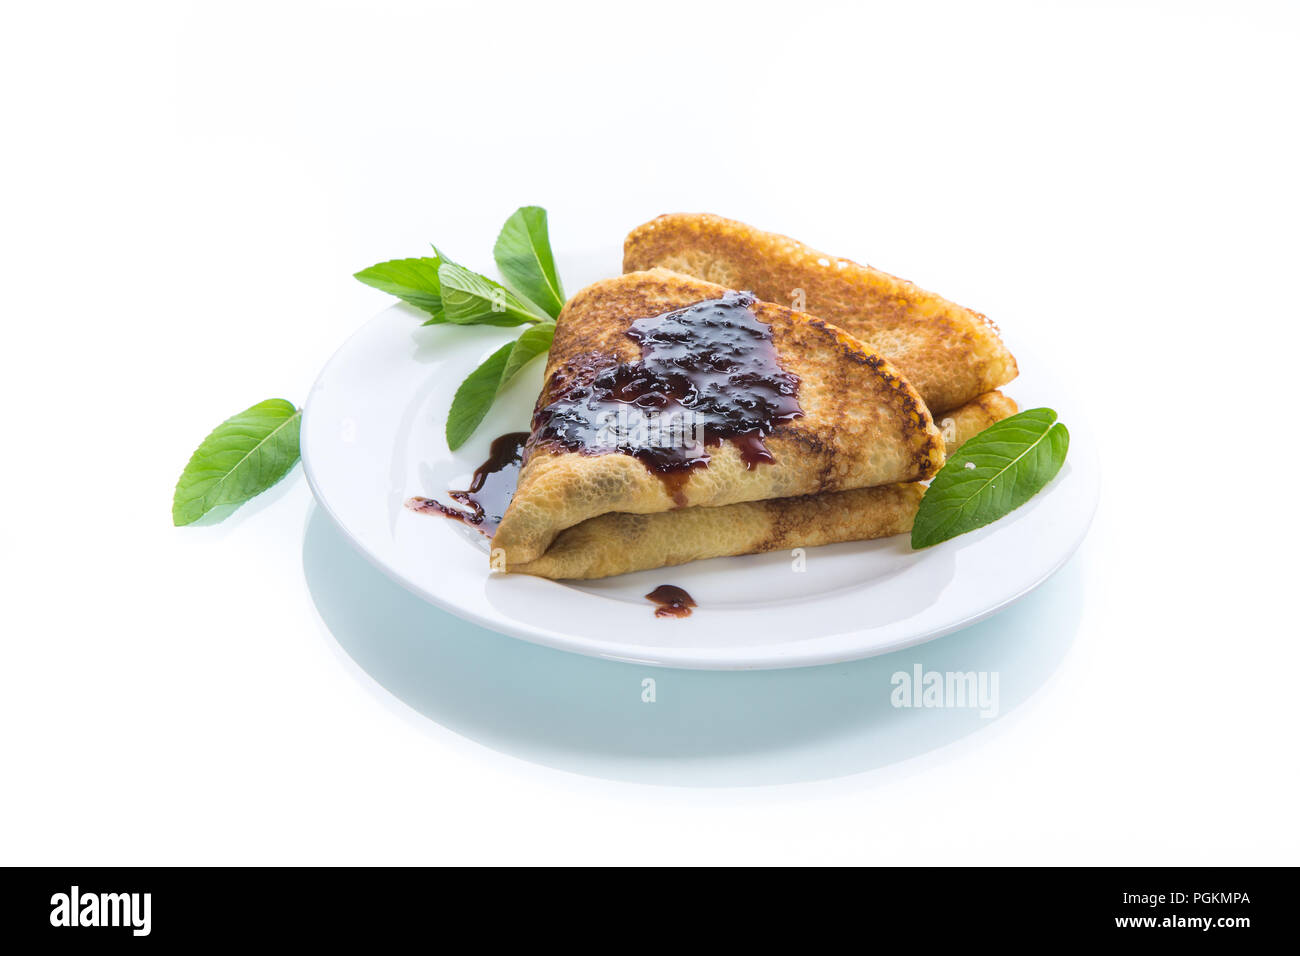 thin sweet pancakes folded in the form of a triangle with jam and a sprig of mint in a plate on a white background - Stock Image